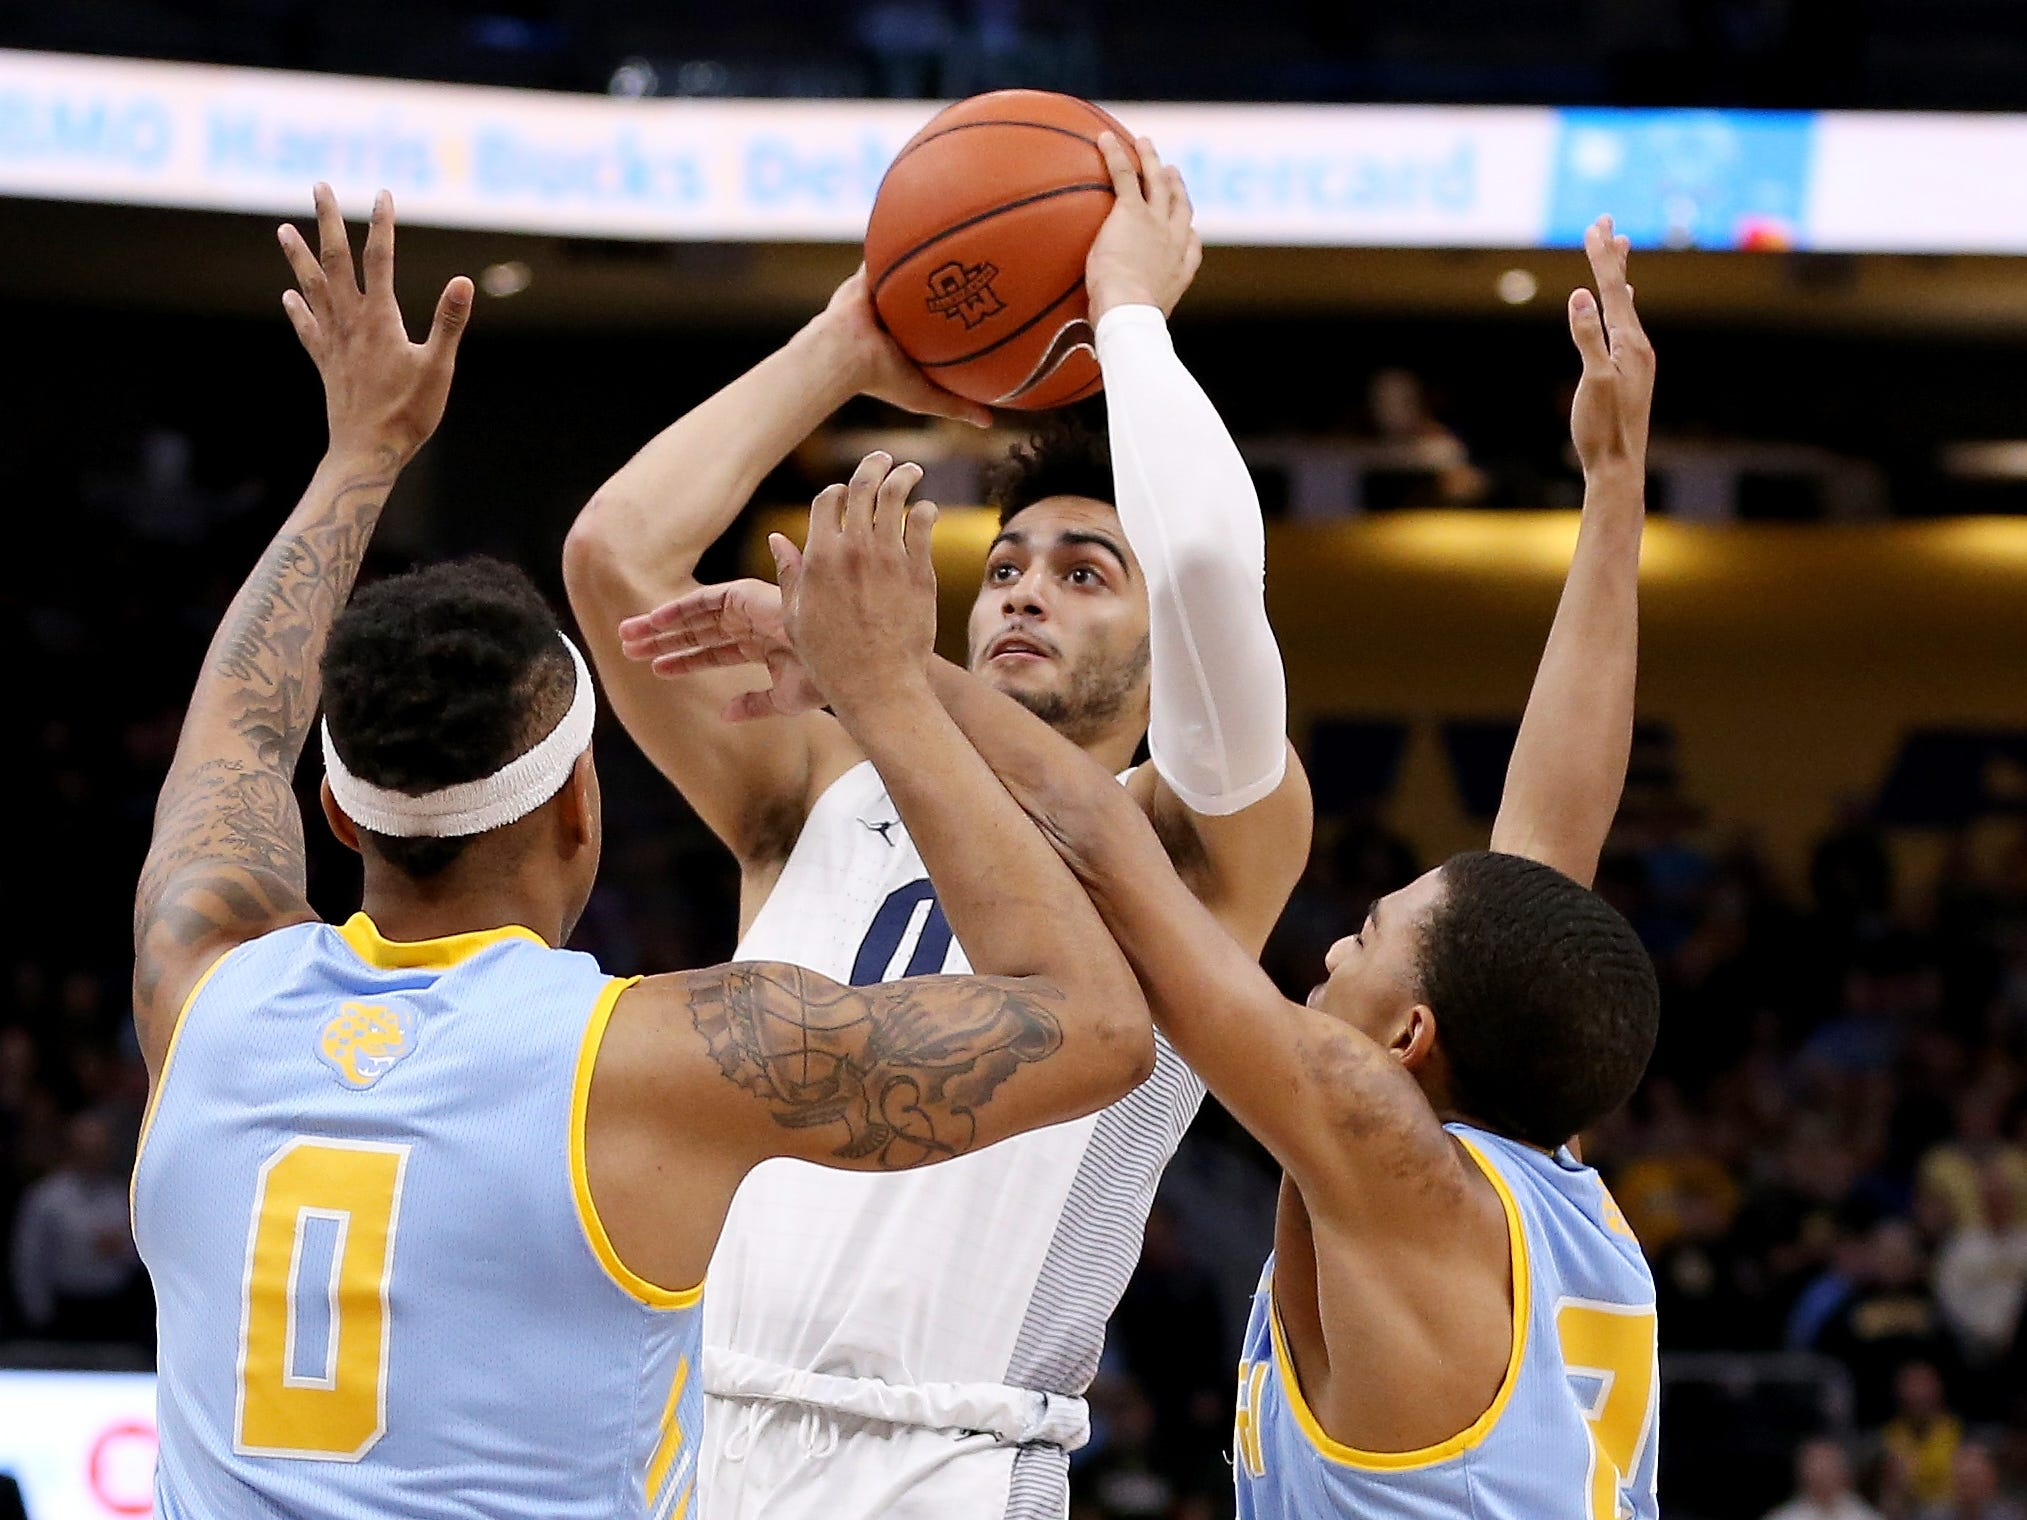 Markus Howard of Marquette puts up a shot over a pair of Southern defenders during the the first half when he scored 23 of his 26 points Friday night.